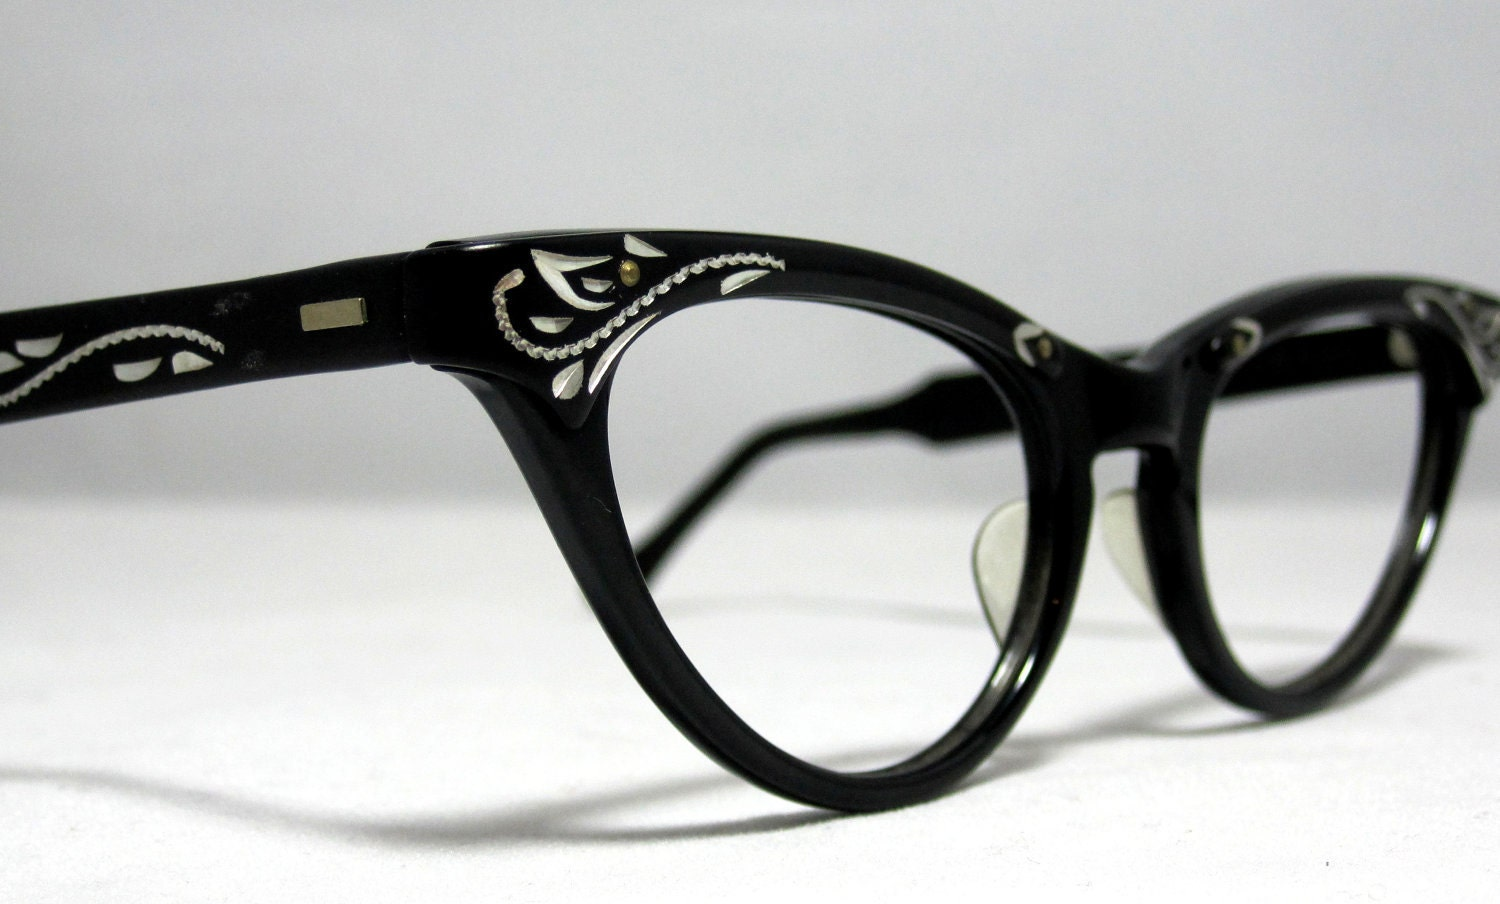 Vintage Black Frame Glasses : Vintage Cat Eye Glasses Frames. Black and Silver with Etched